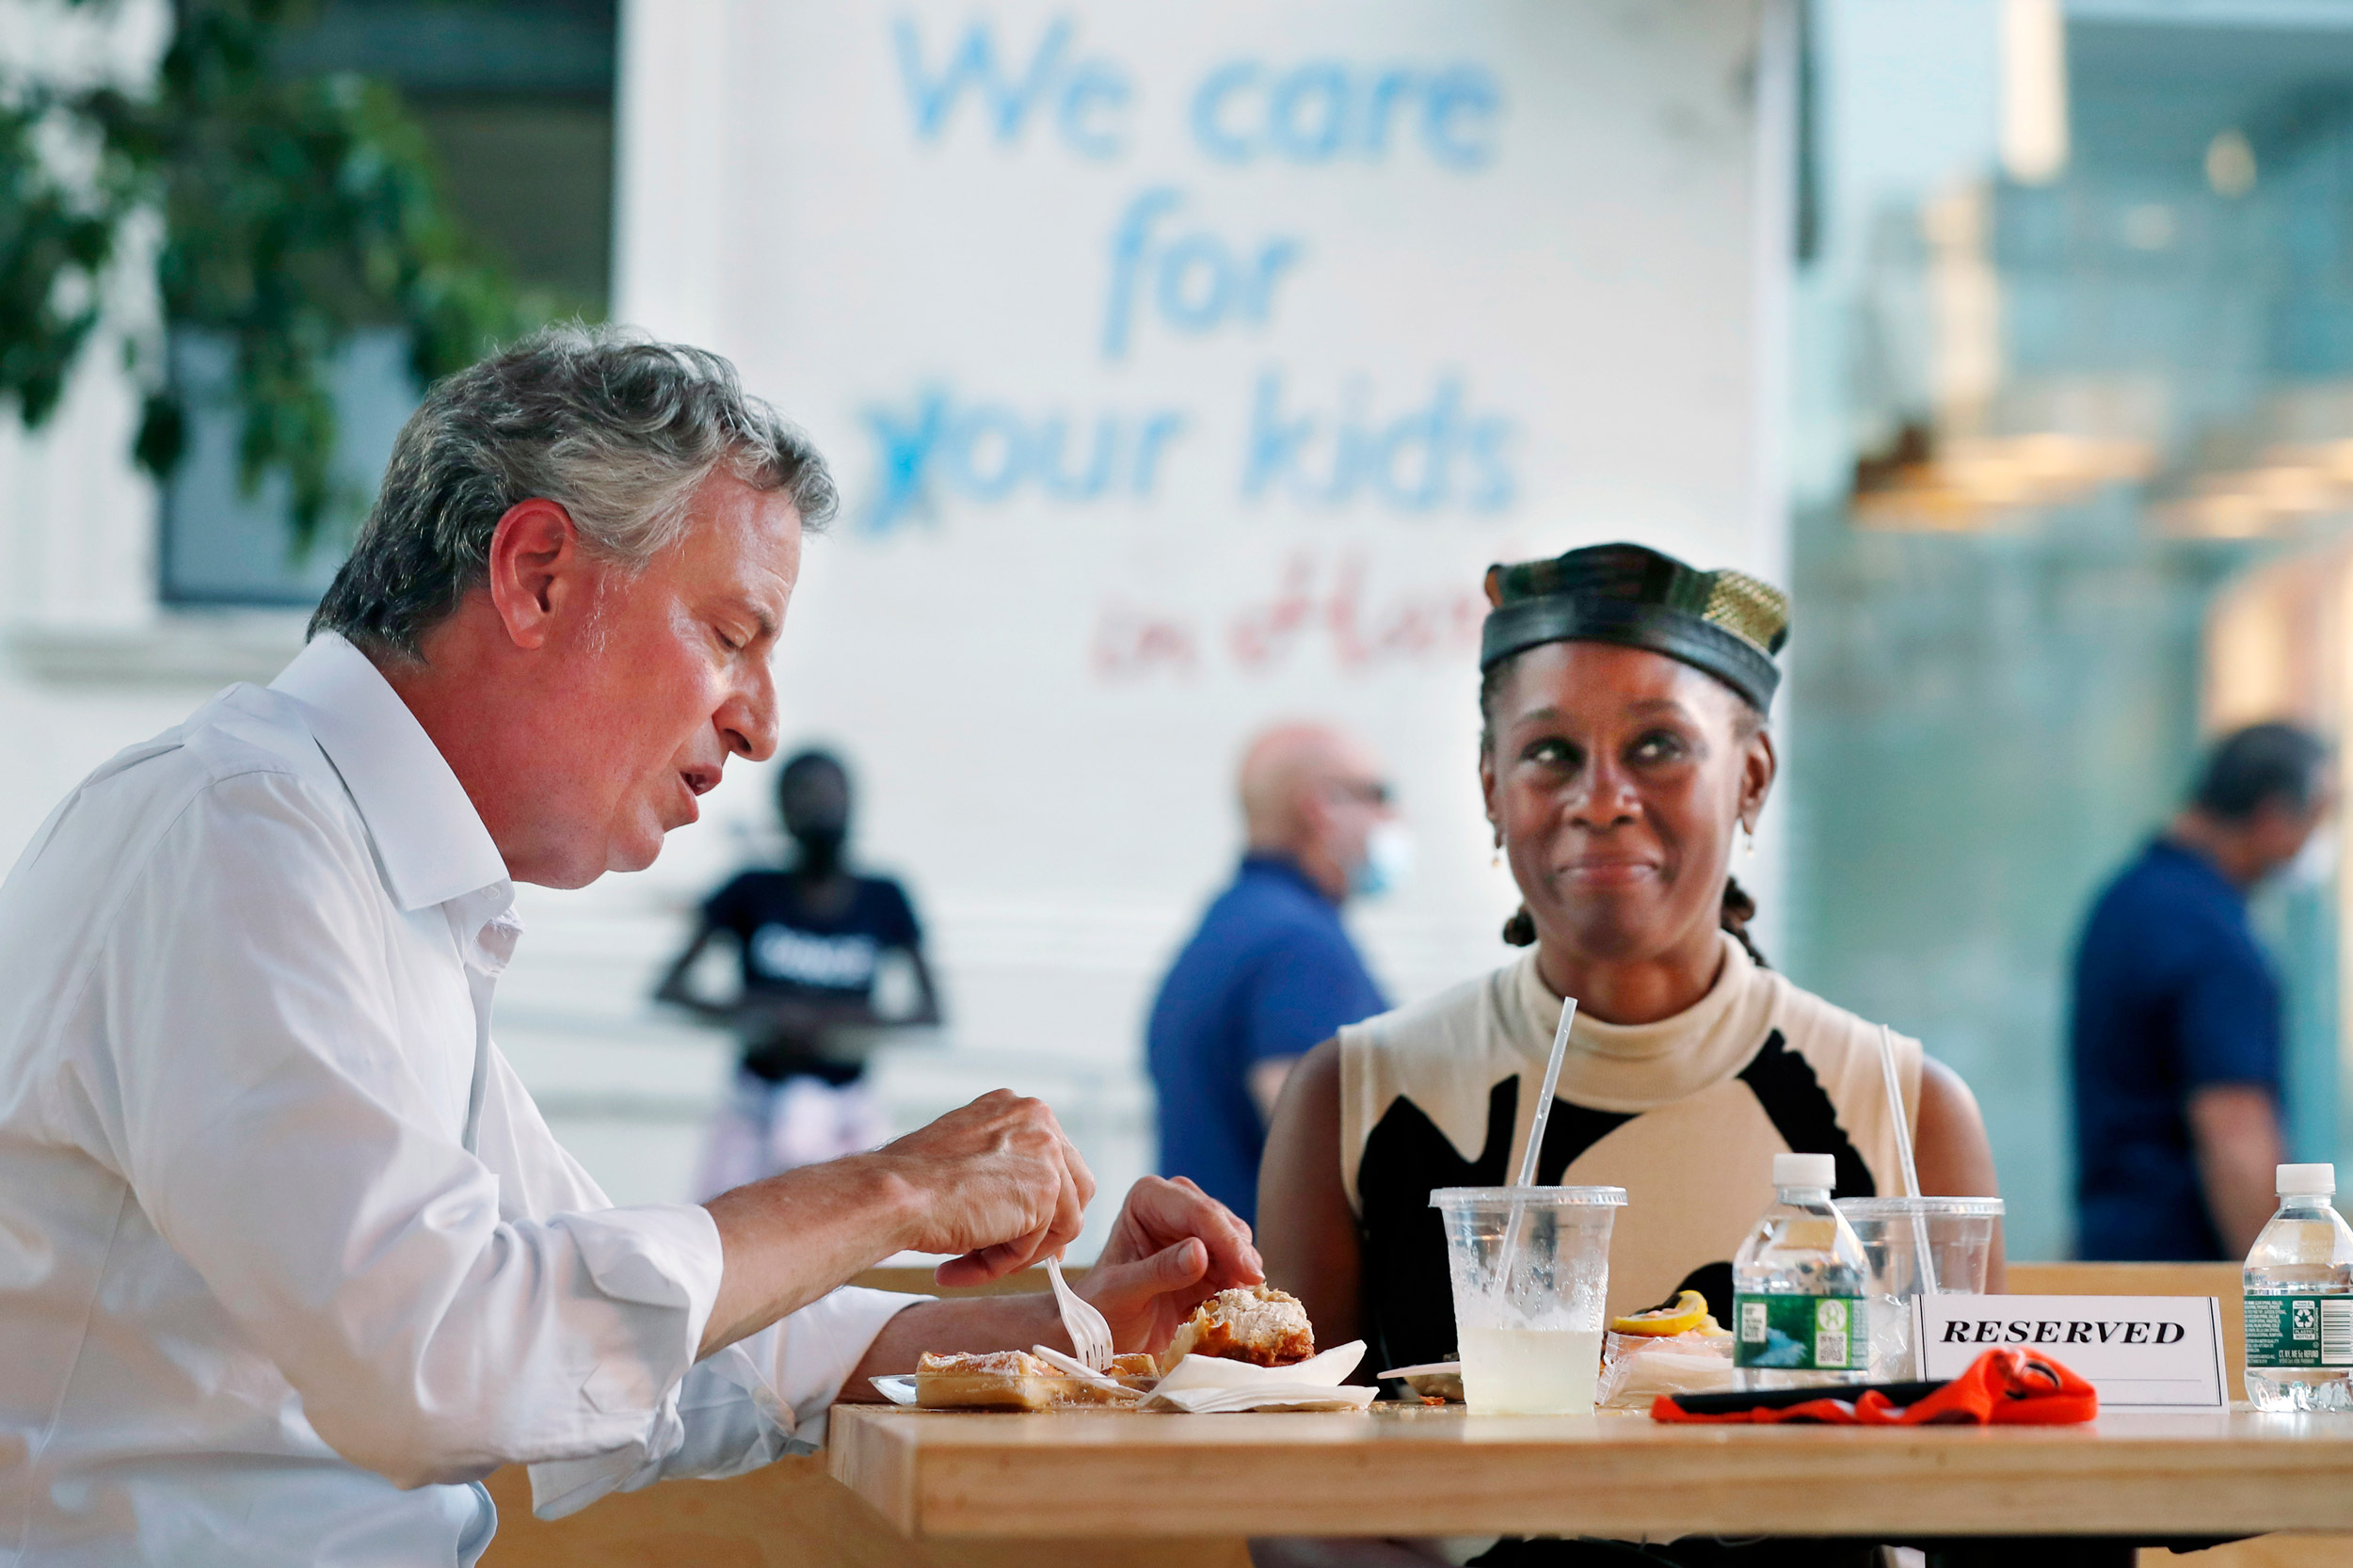 New York Mayor Bill de Blasio, left, dines with his wife Chirlane McCray in an outdoor booth at Melba's restaurant in Harlem on the first day of the Phase 2 reopening of the city during thecoronavirus pandemic Monday, June 22, 2020, in New York. (AP Photo/